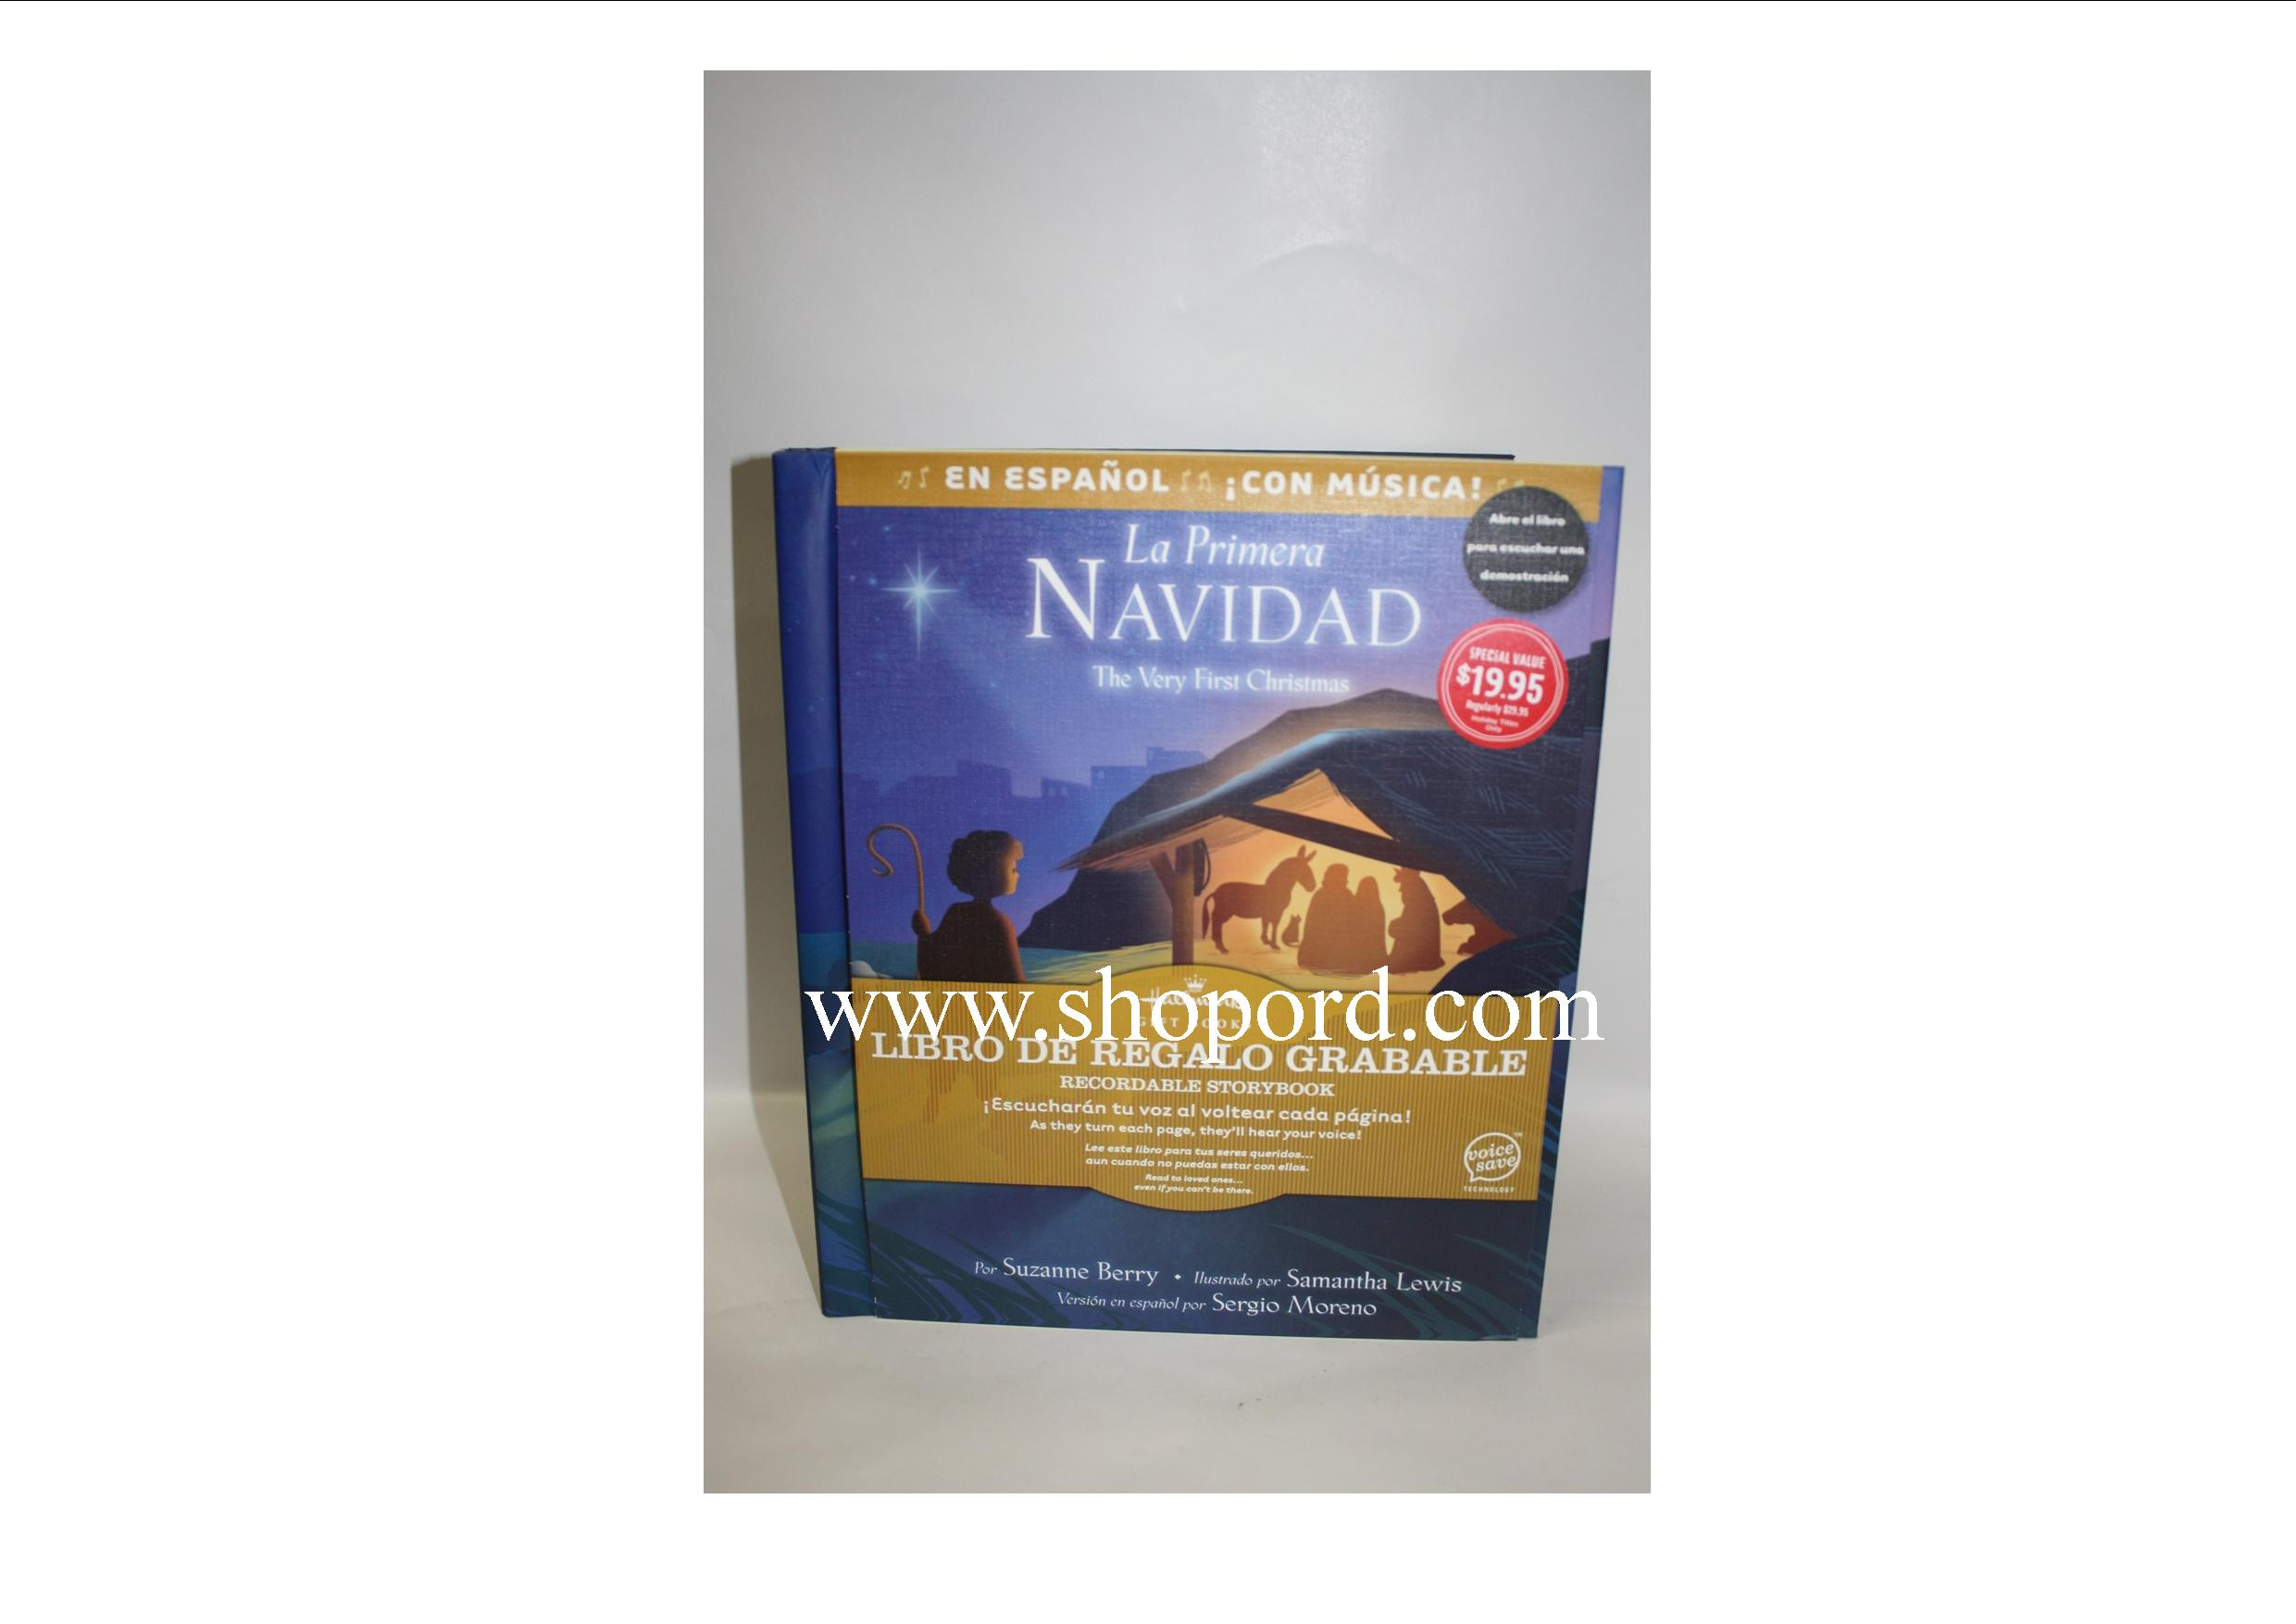 Hallmark 2011 La Primera Navidad The Very First Christmas Recordable Storybook KOB9030